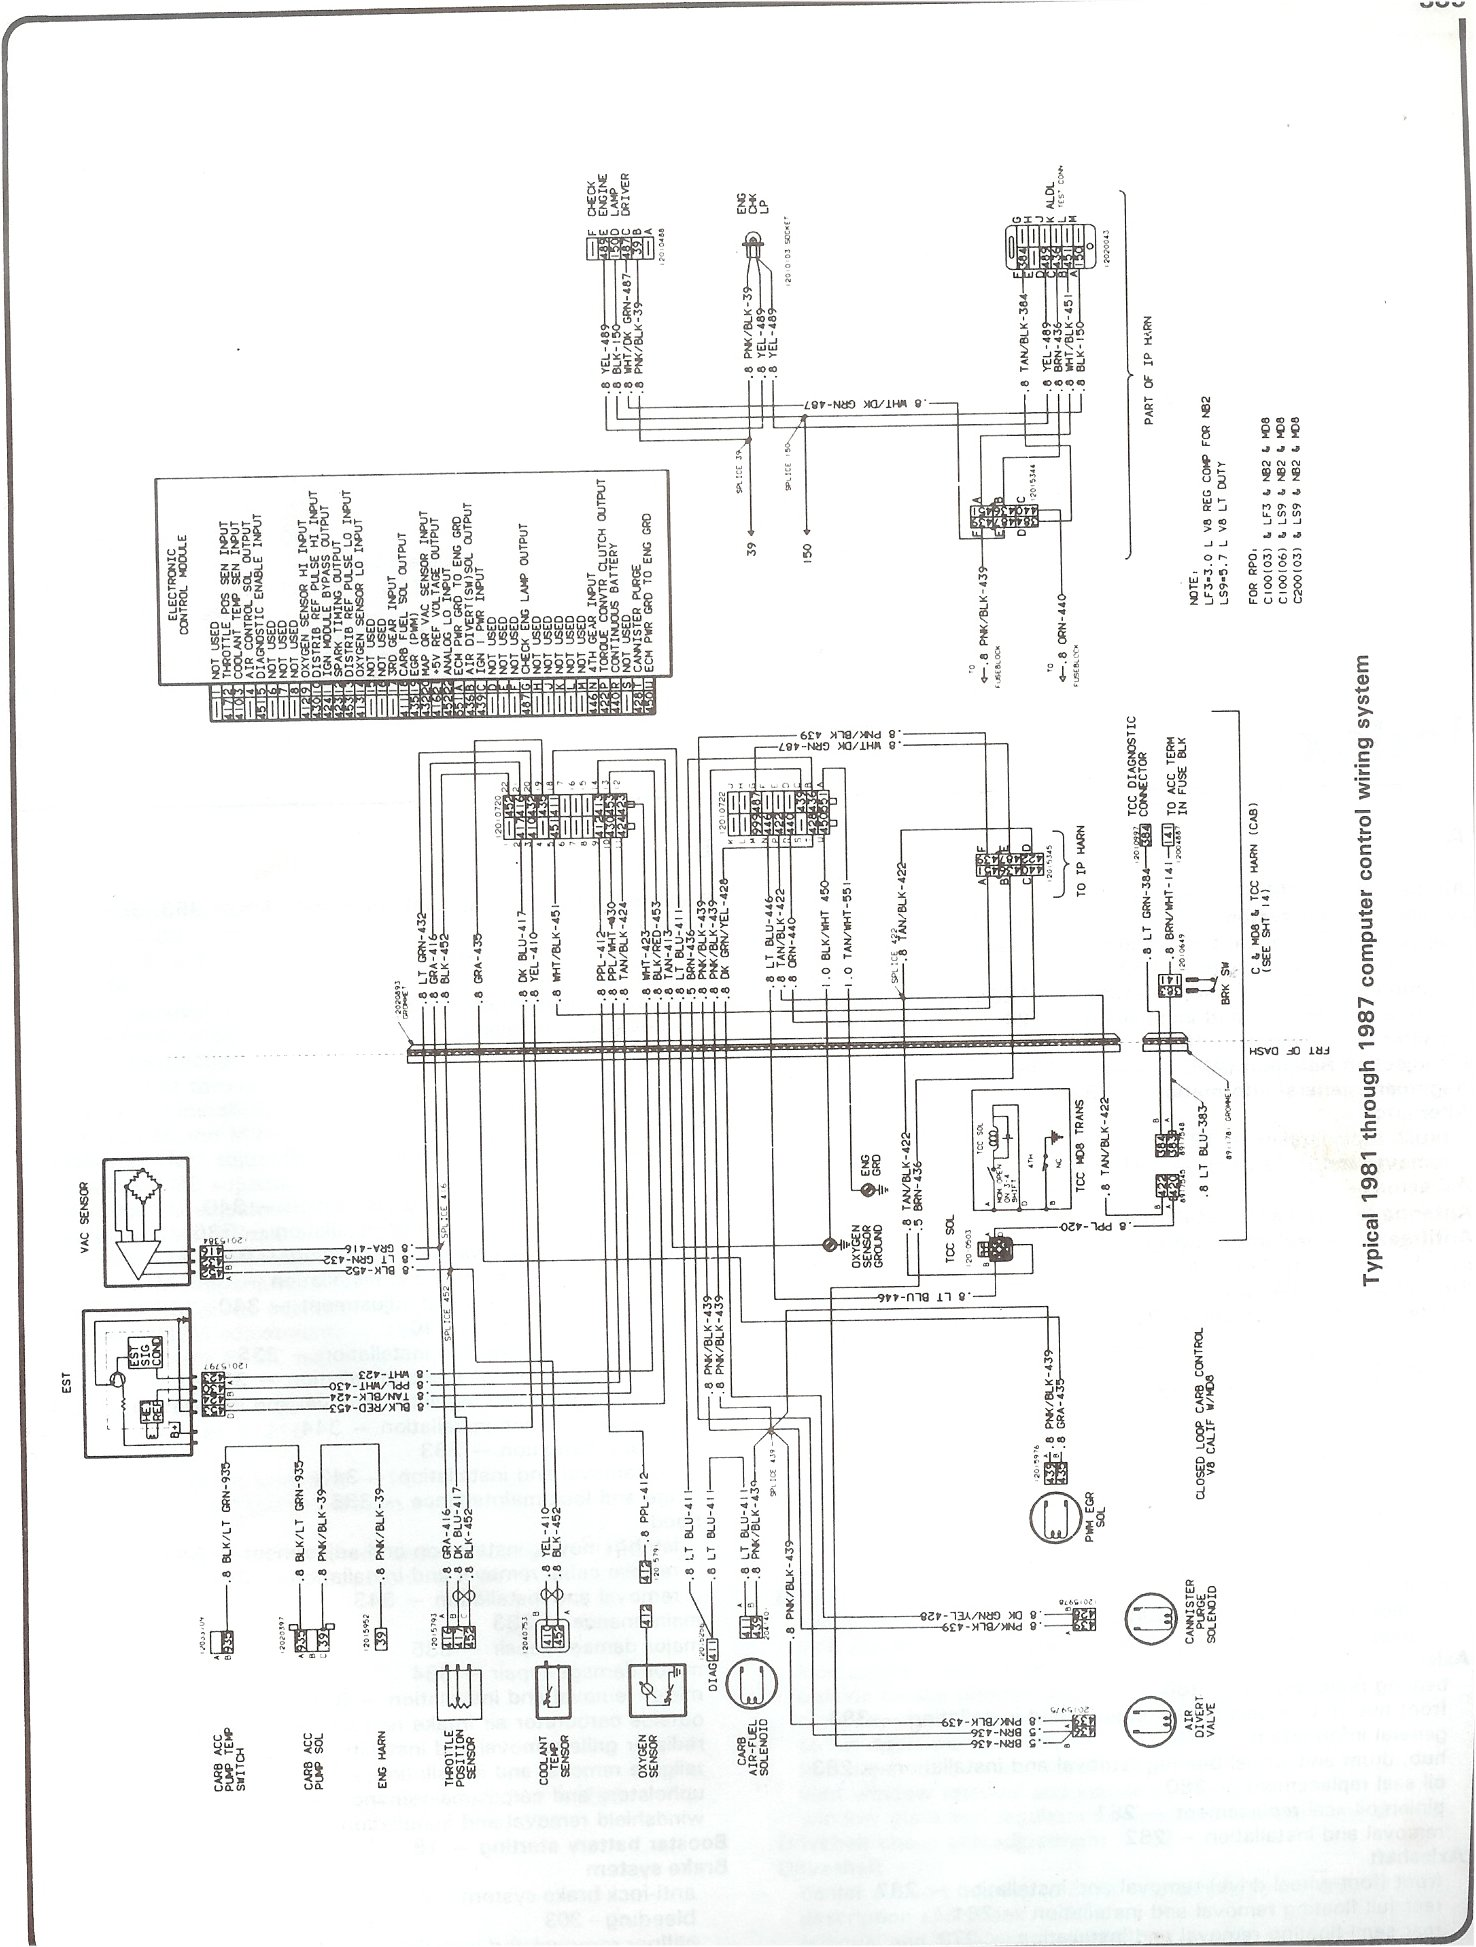 81 87_computer_control_wiring complete 73 87 wiring diagrams chevy truck wiring harness diagram at mr168.co